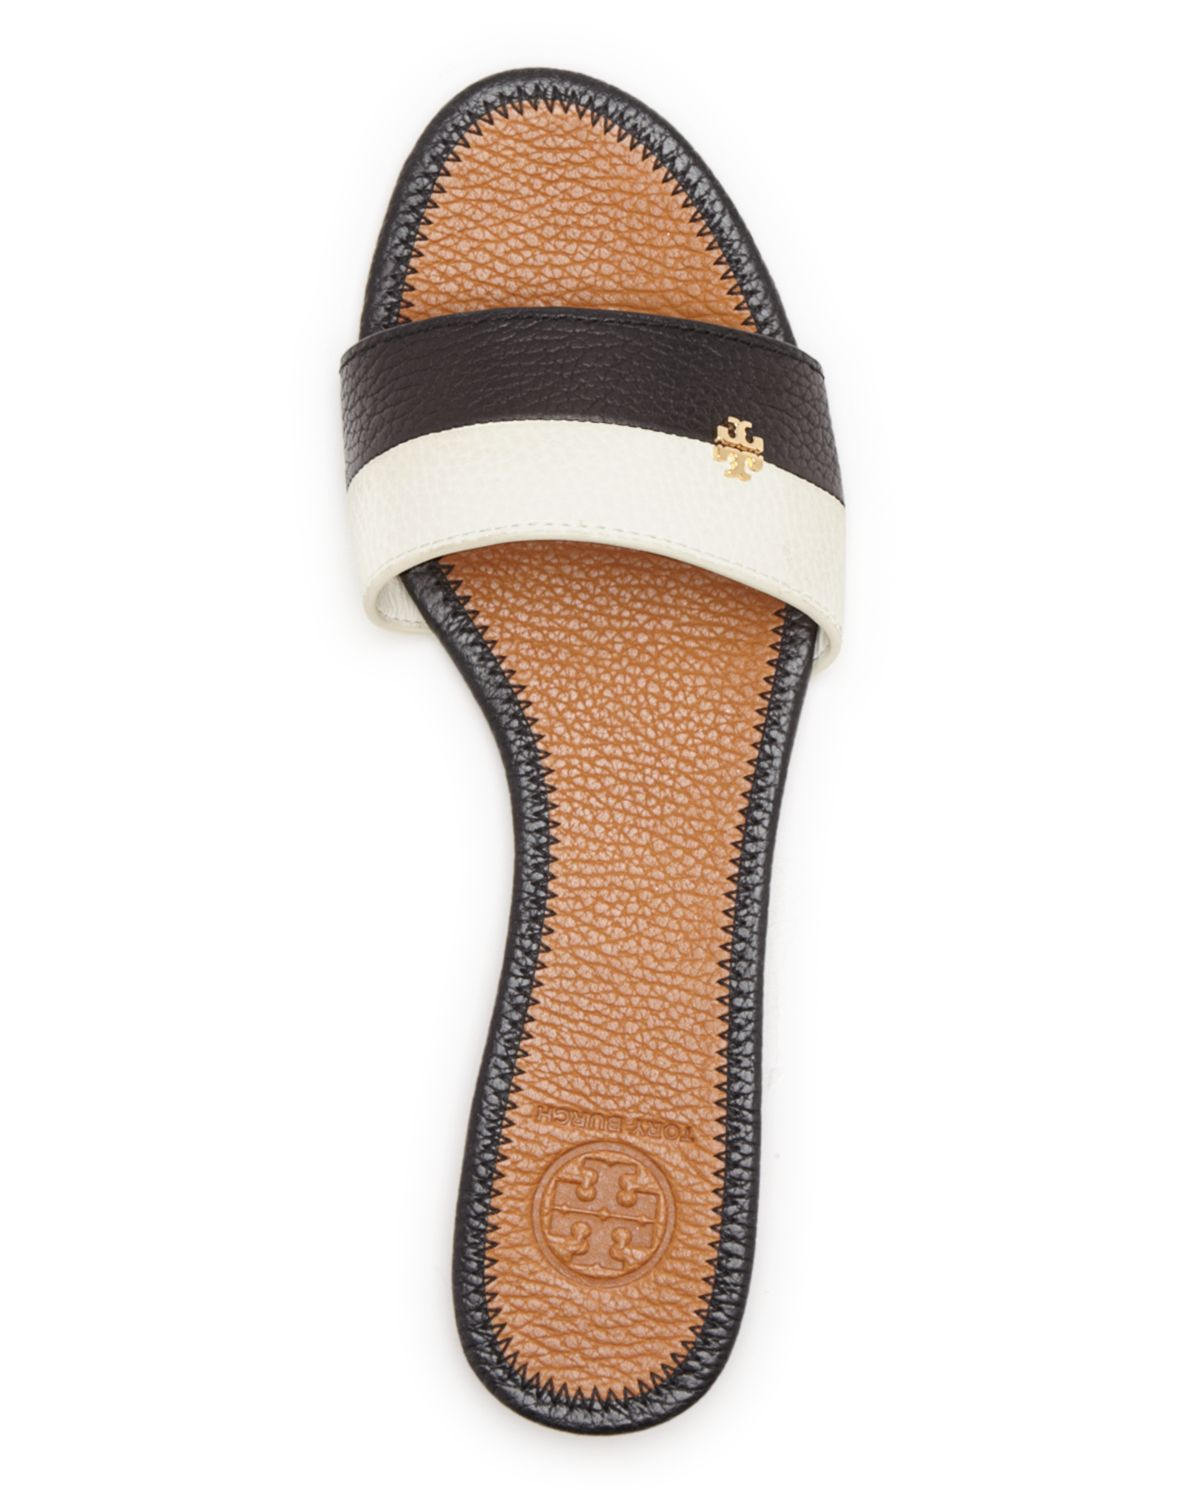 recommend buy cheap deals Tory Burch Bi-Color Wedge Espadrilles Manchester free shipping for nice quality for sale free shipping JNUnakBXe